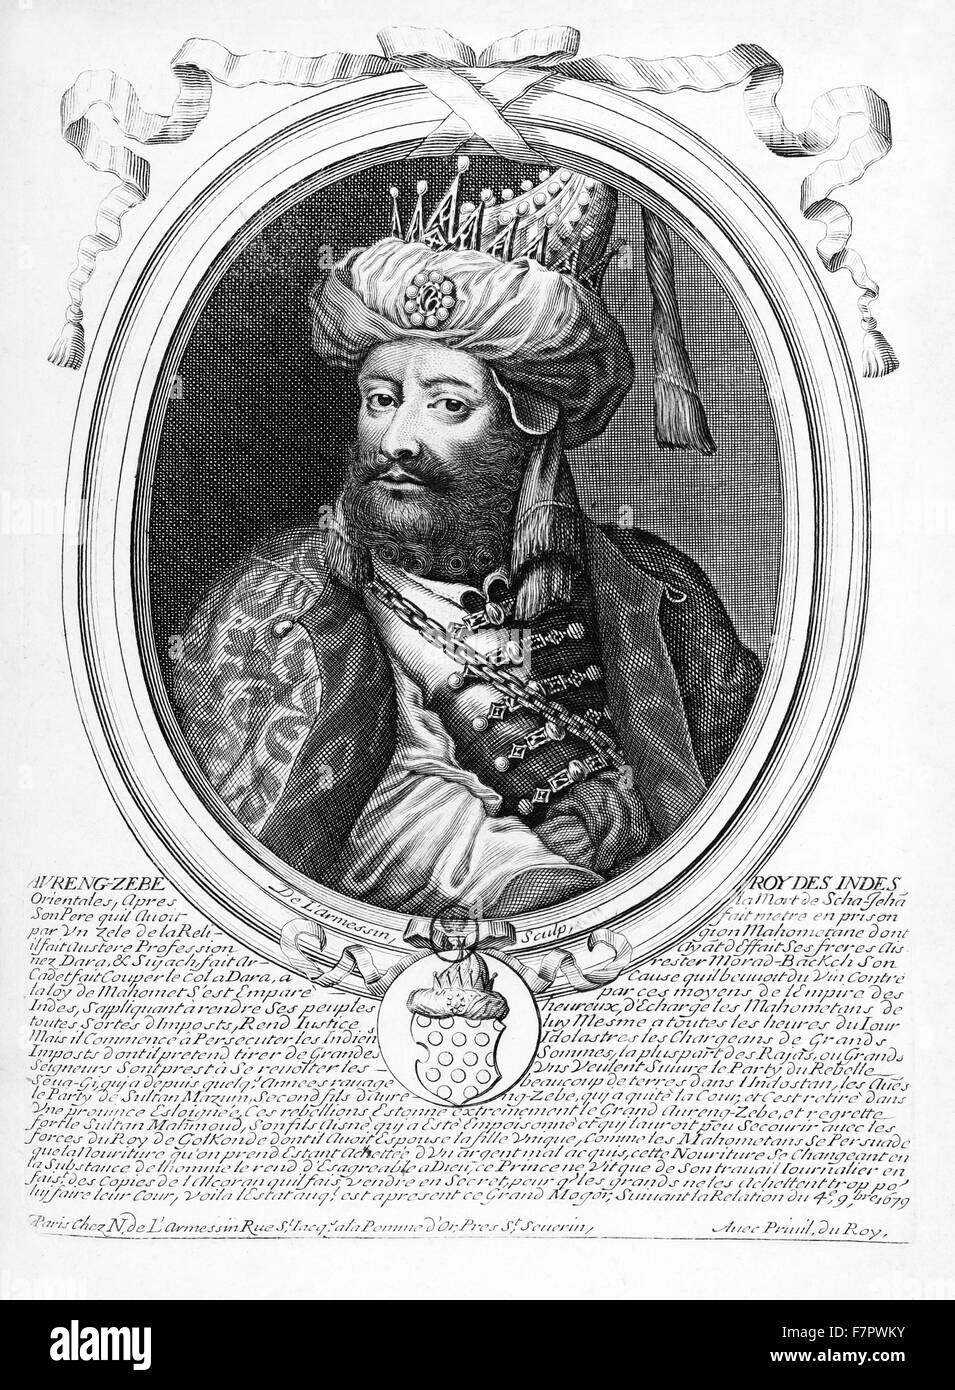 Abdul Muzaffar Muhi-ud-Din Muhammad Aurangzeb (14 October 1618 – 20 February 1707), commonly known as Aurangzeb - Stock Image